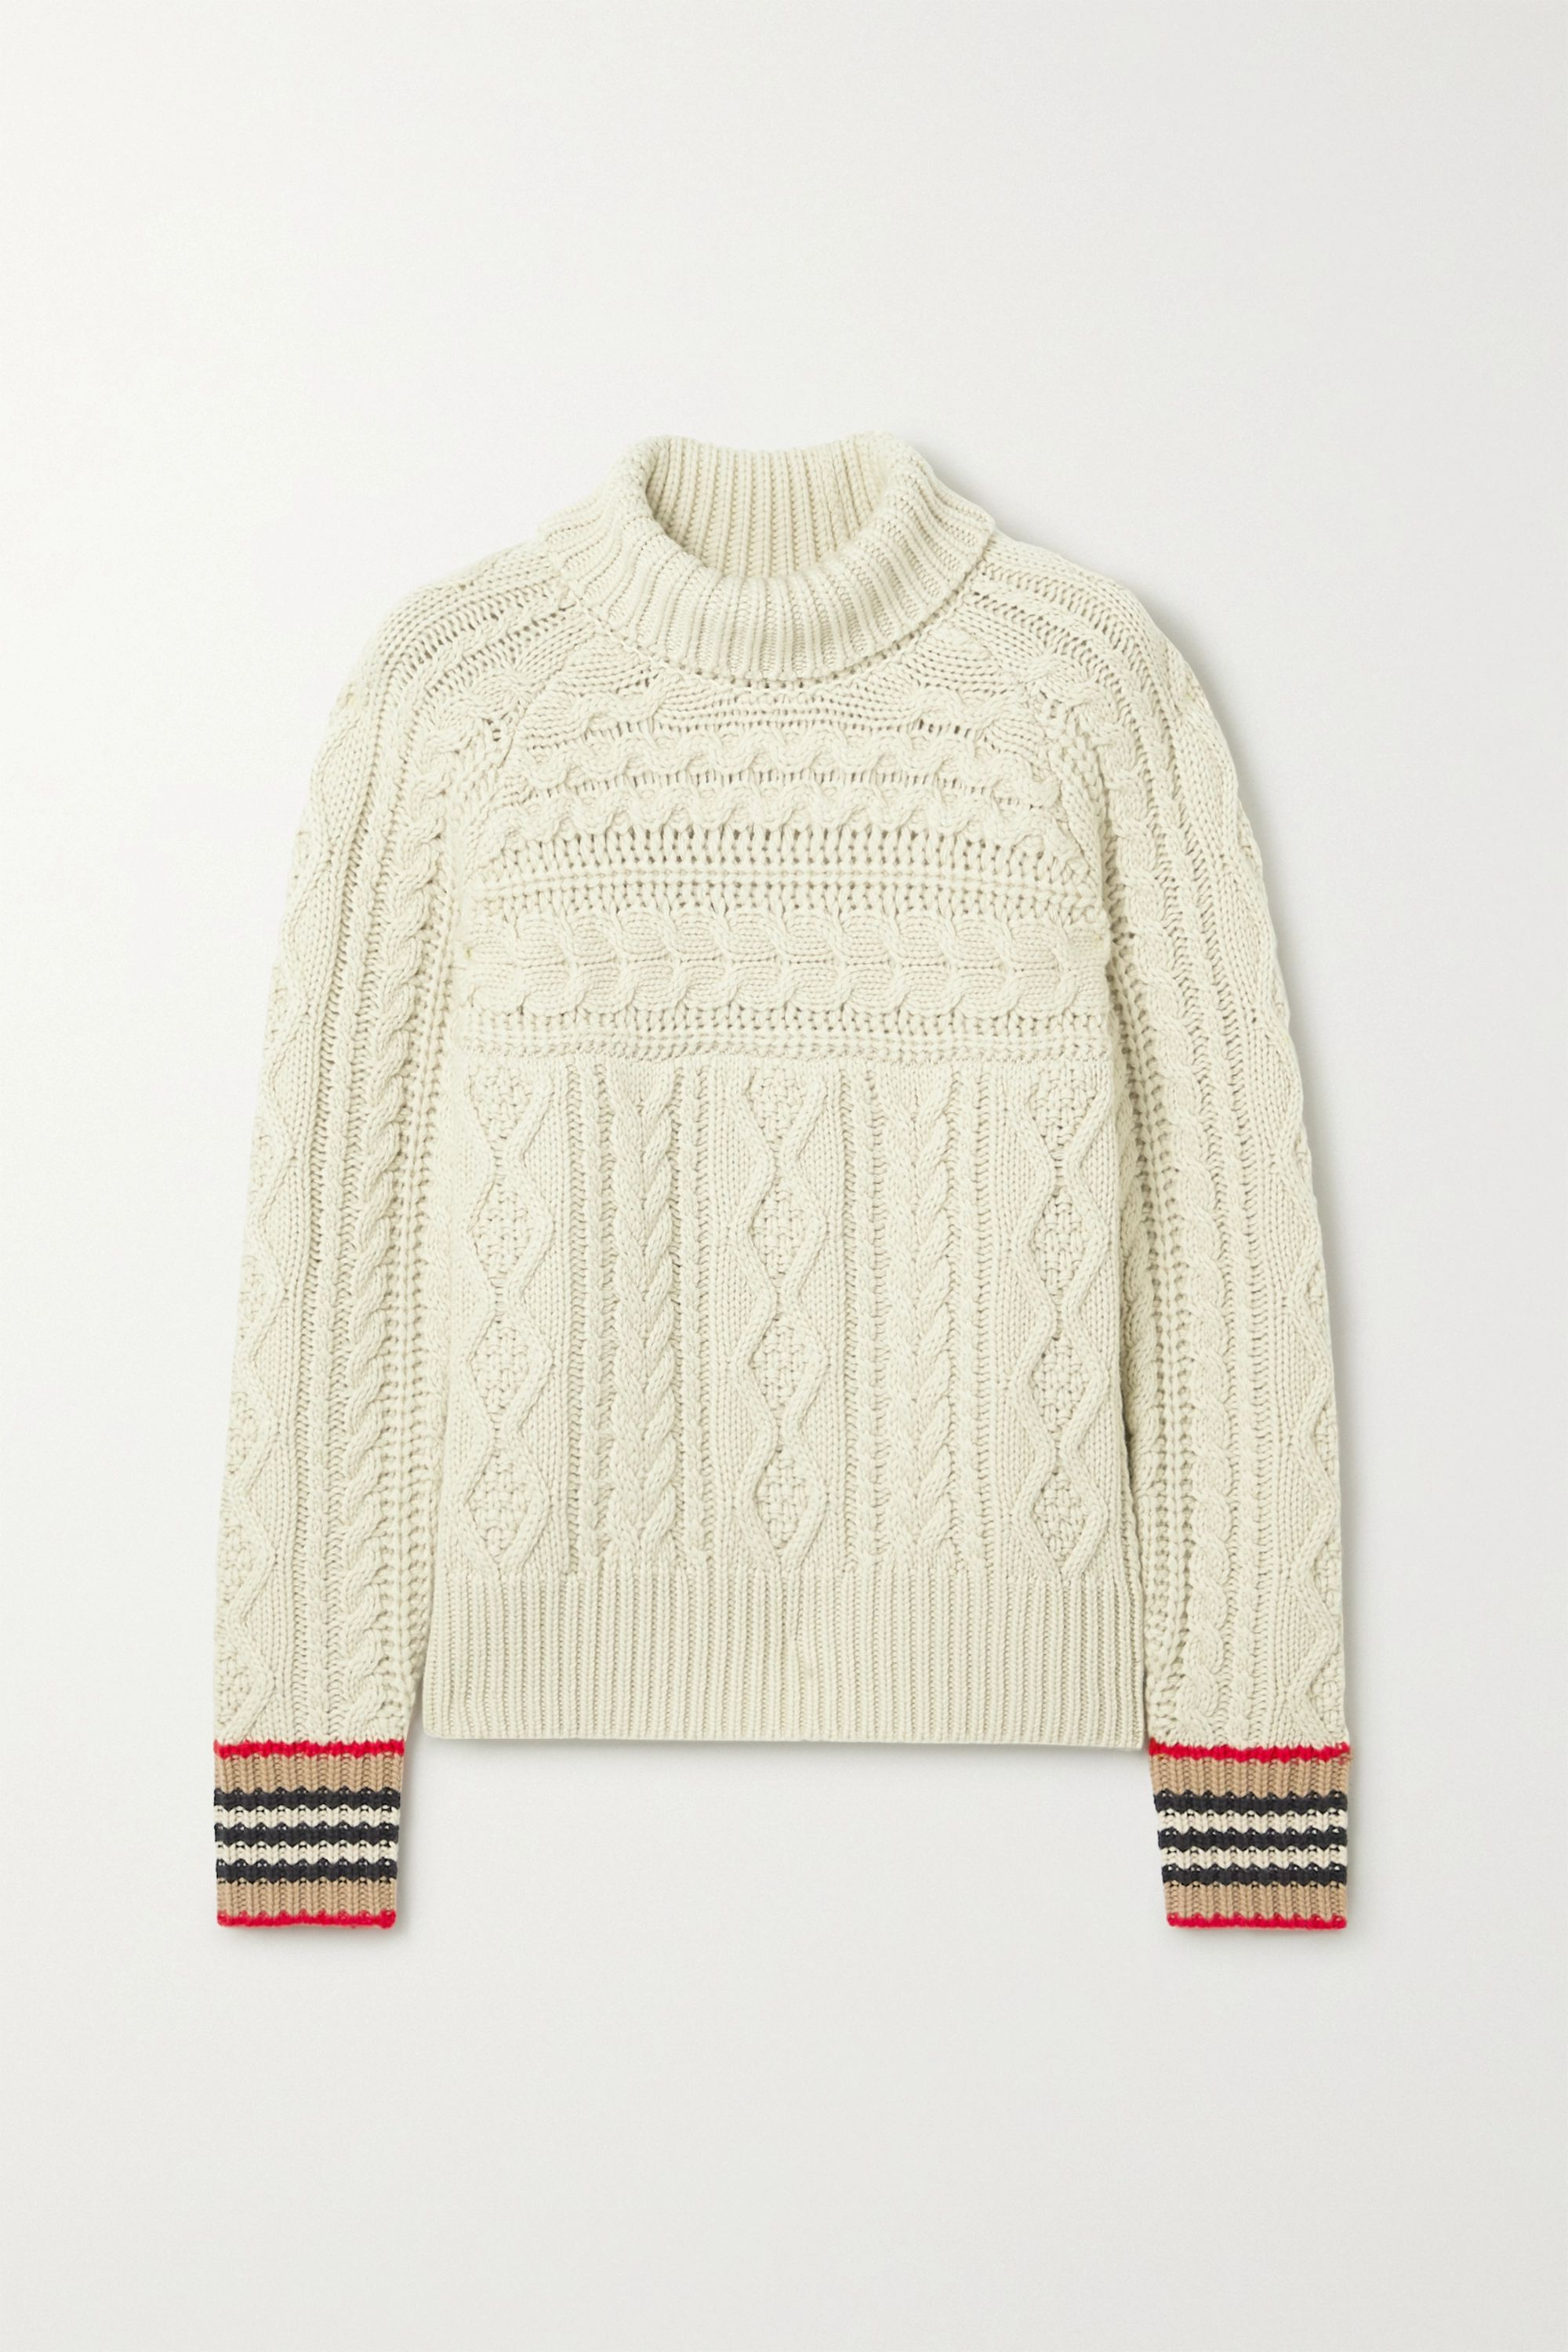 Striped cable knit cashmere turtleneck sweater